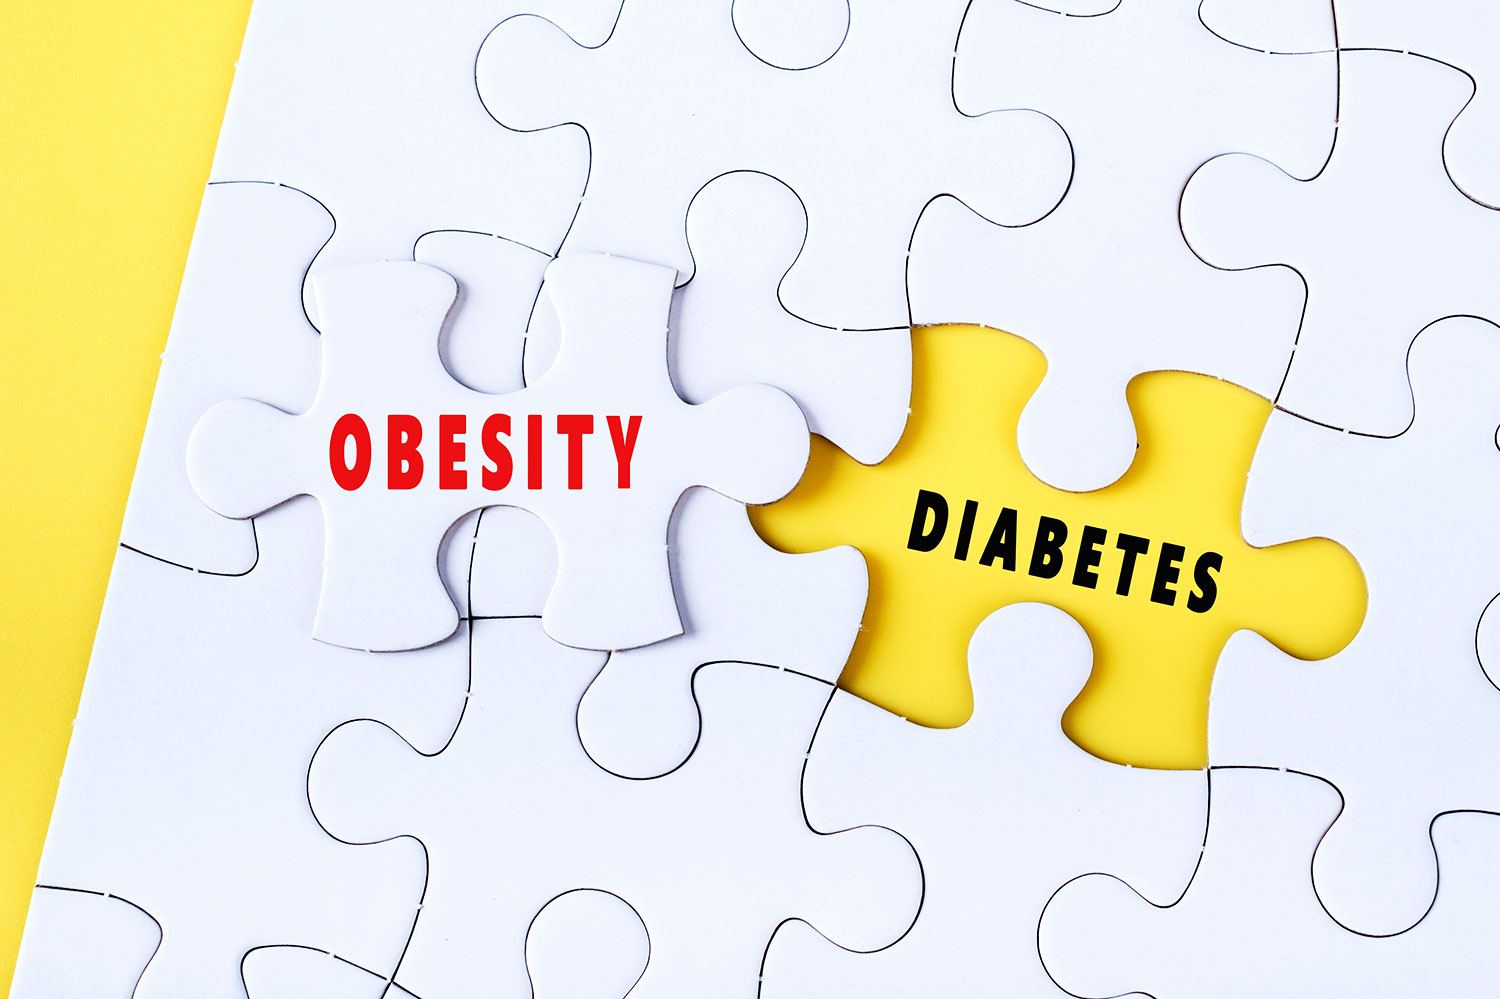 Diabetes and obesity found to increase COVID-19 severity